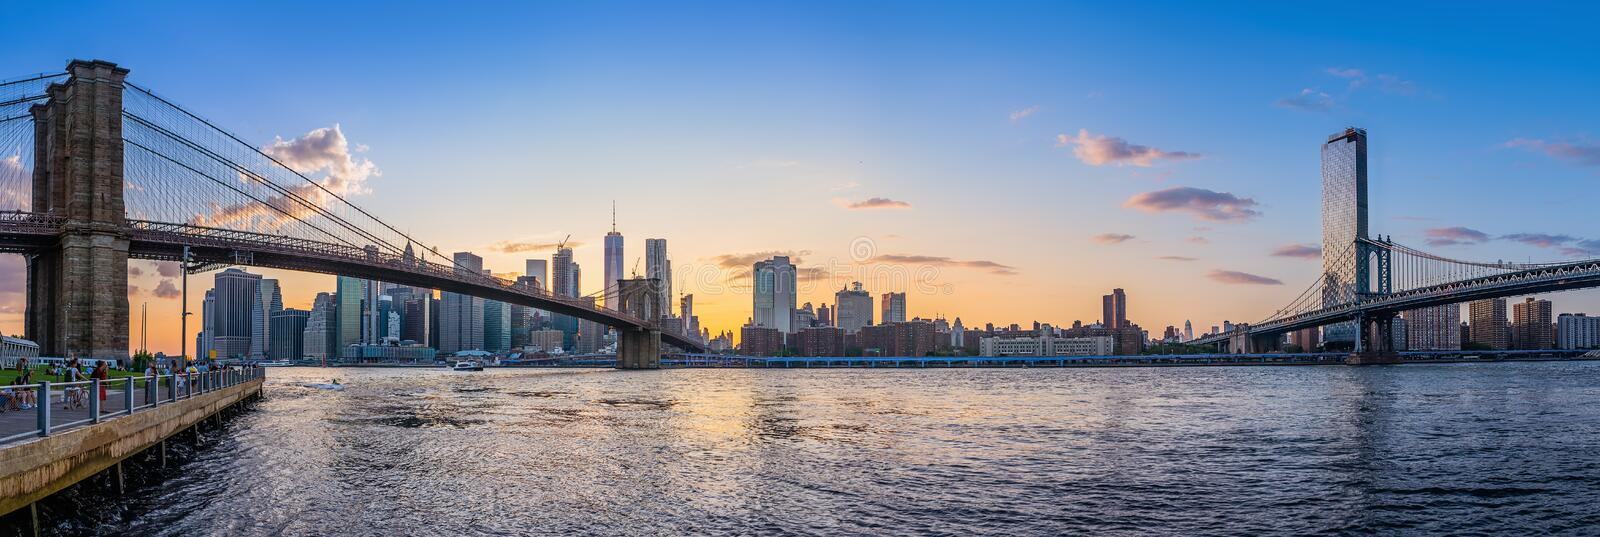 New york. Brooklyn bridge and lower manhattan while sunset stock images